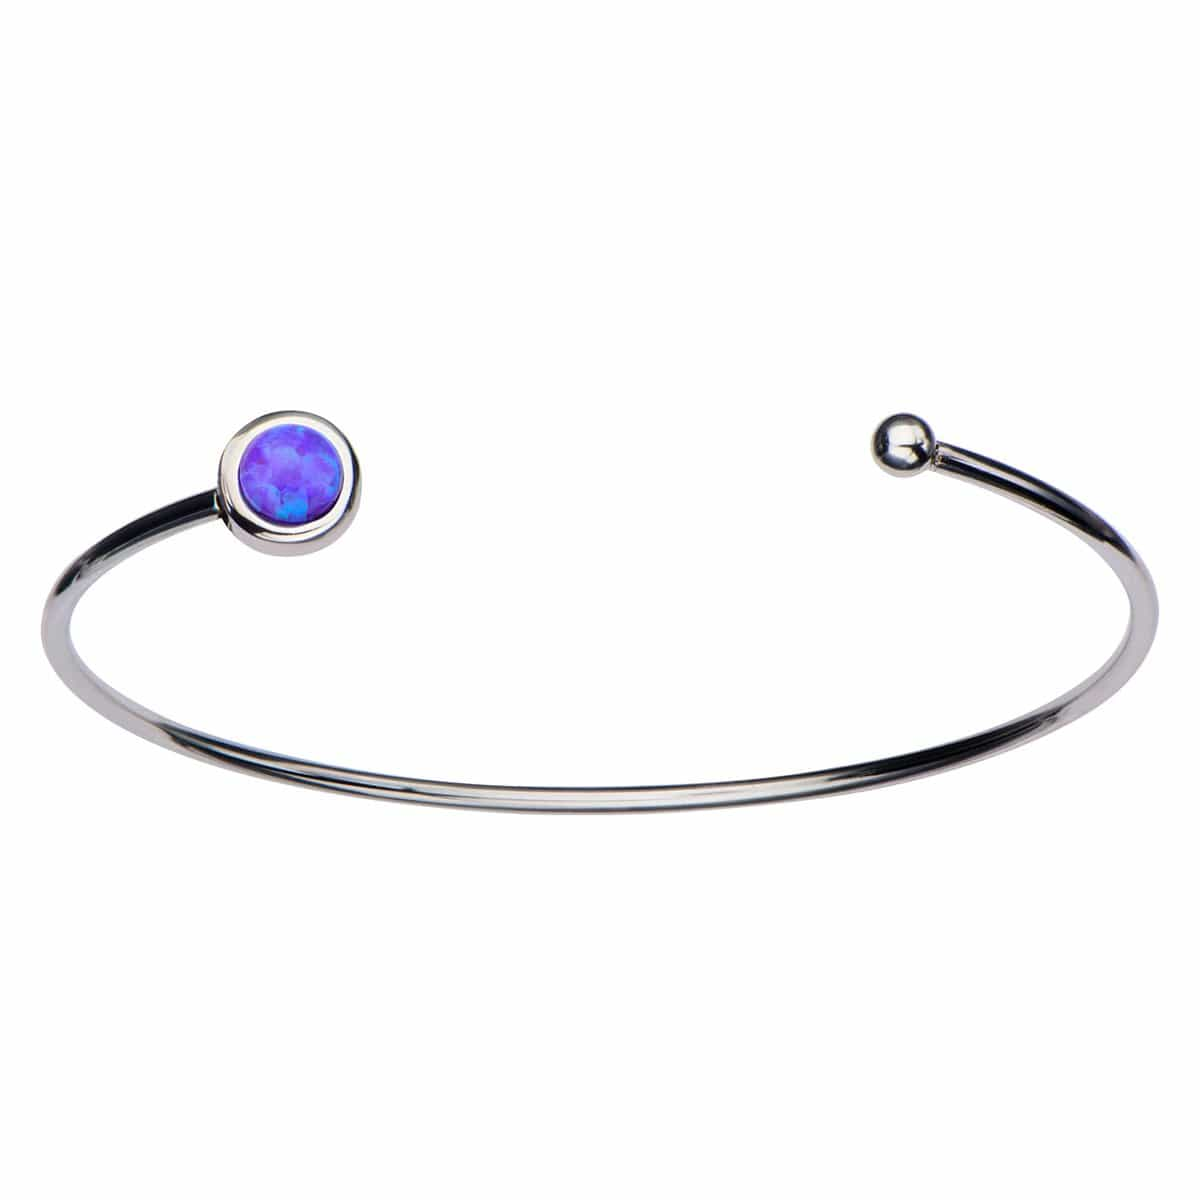 Silver Stainless Steel Bezel Set Purple Artificial Opal in Open Cuff Bangle